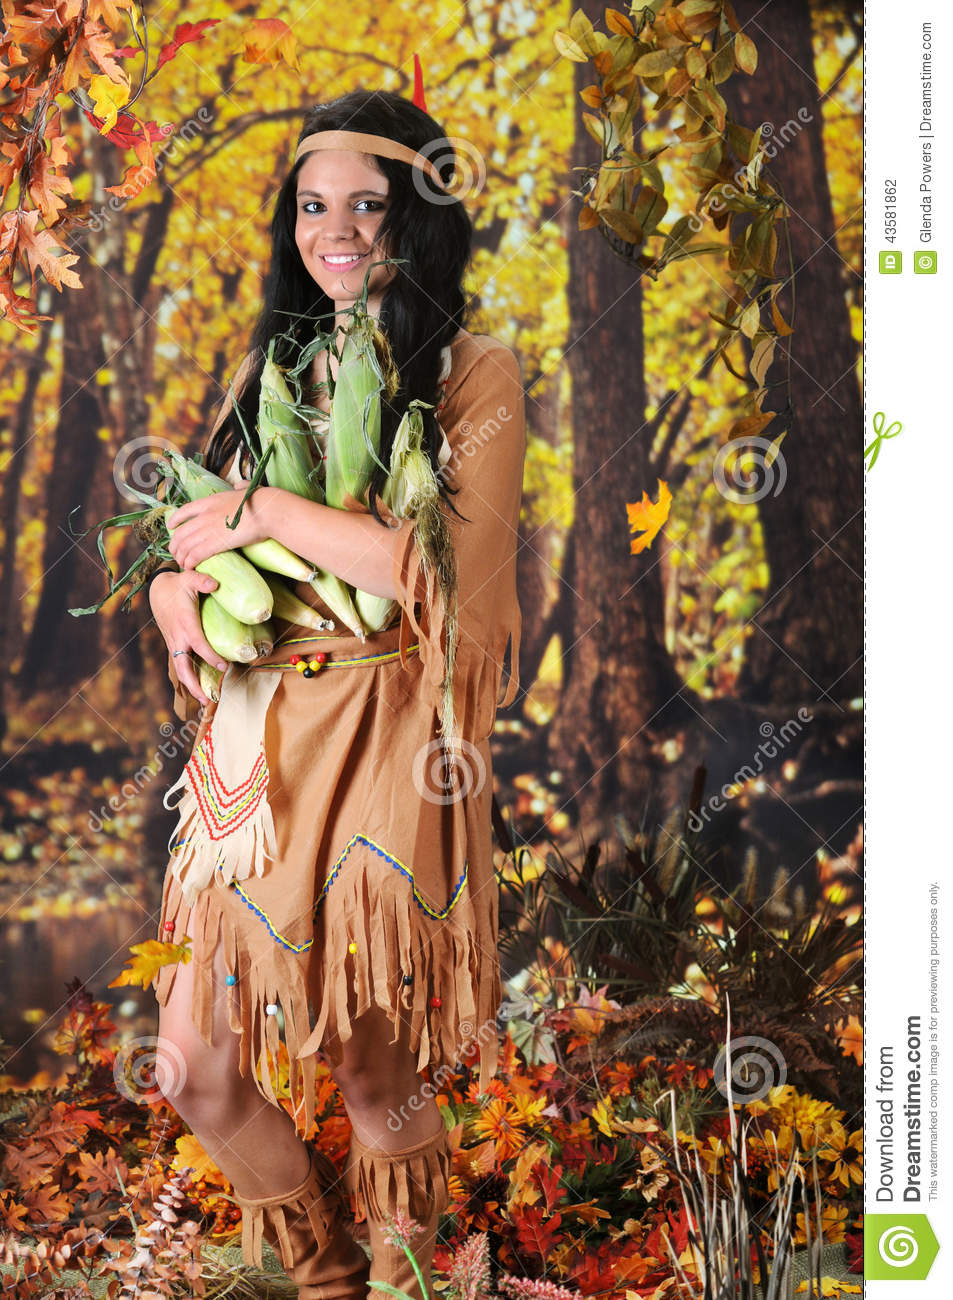 beautiful Indian teen carrying an armload of corn. She's in a ...: dreamstime.com/stock-photo-indian-maiden-carrying-corn-beautiful...